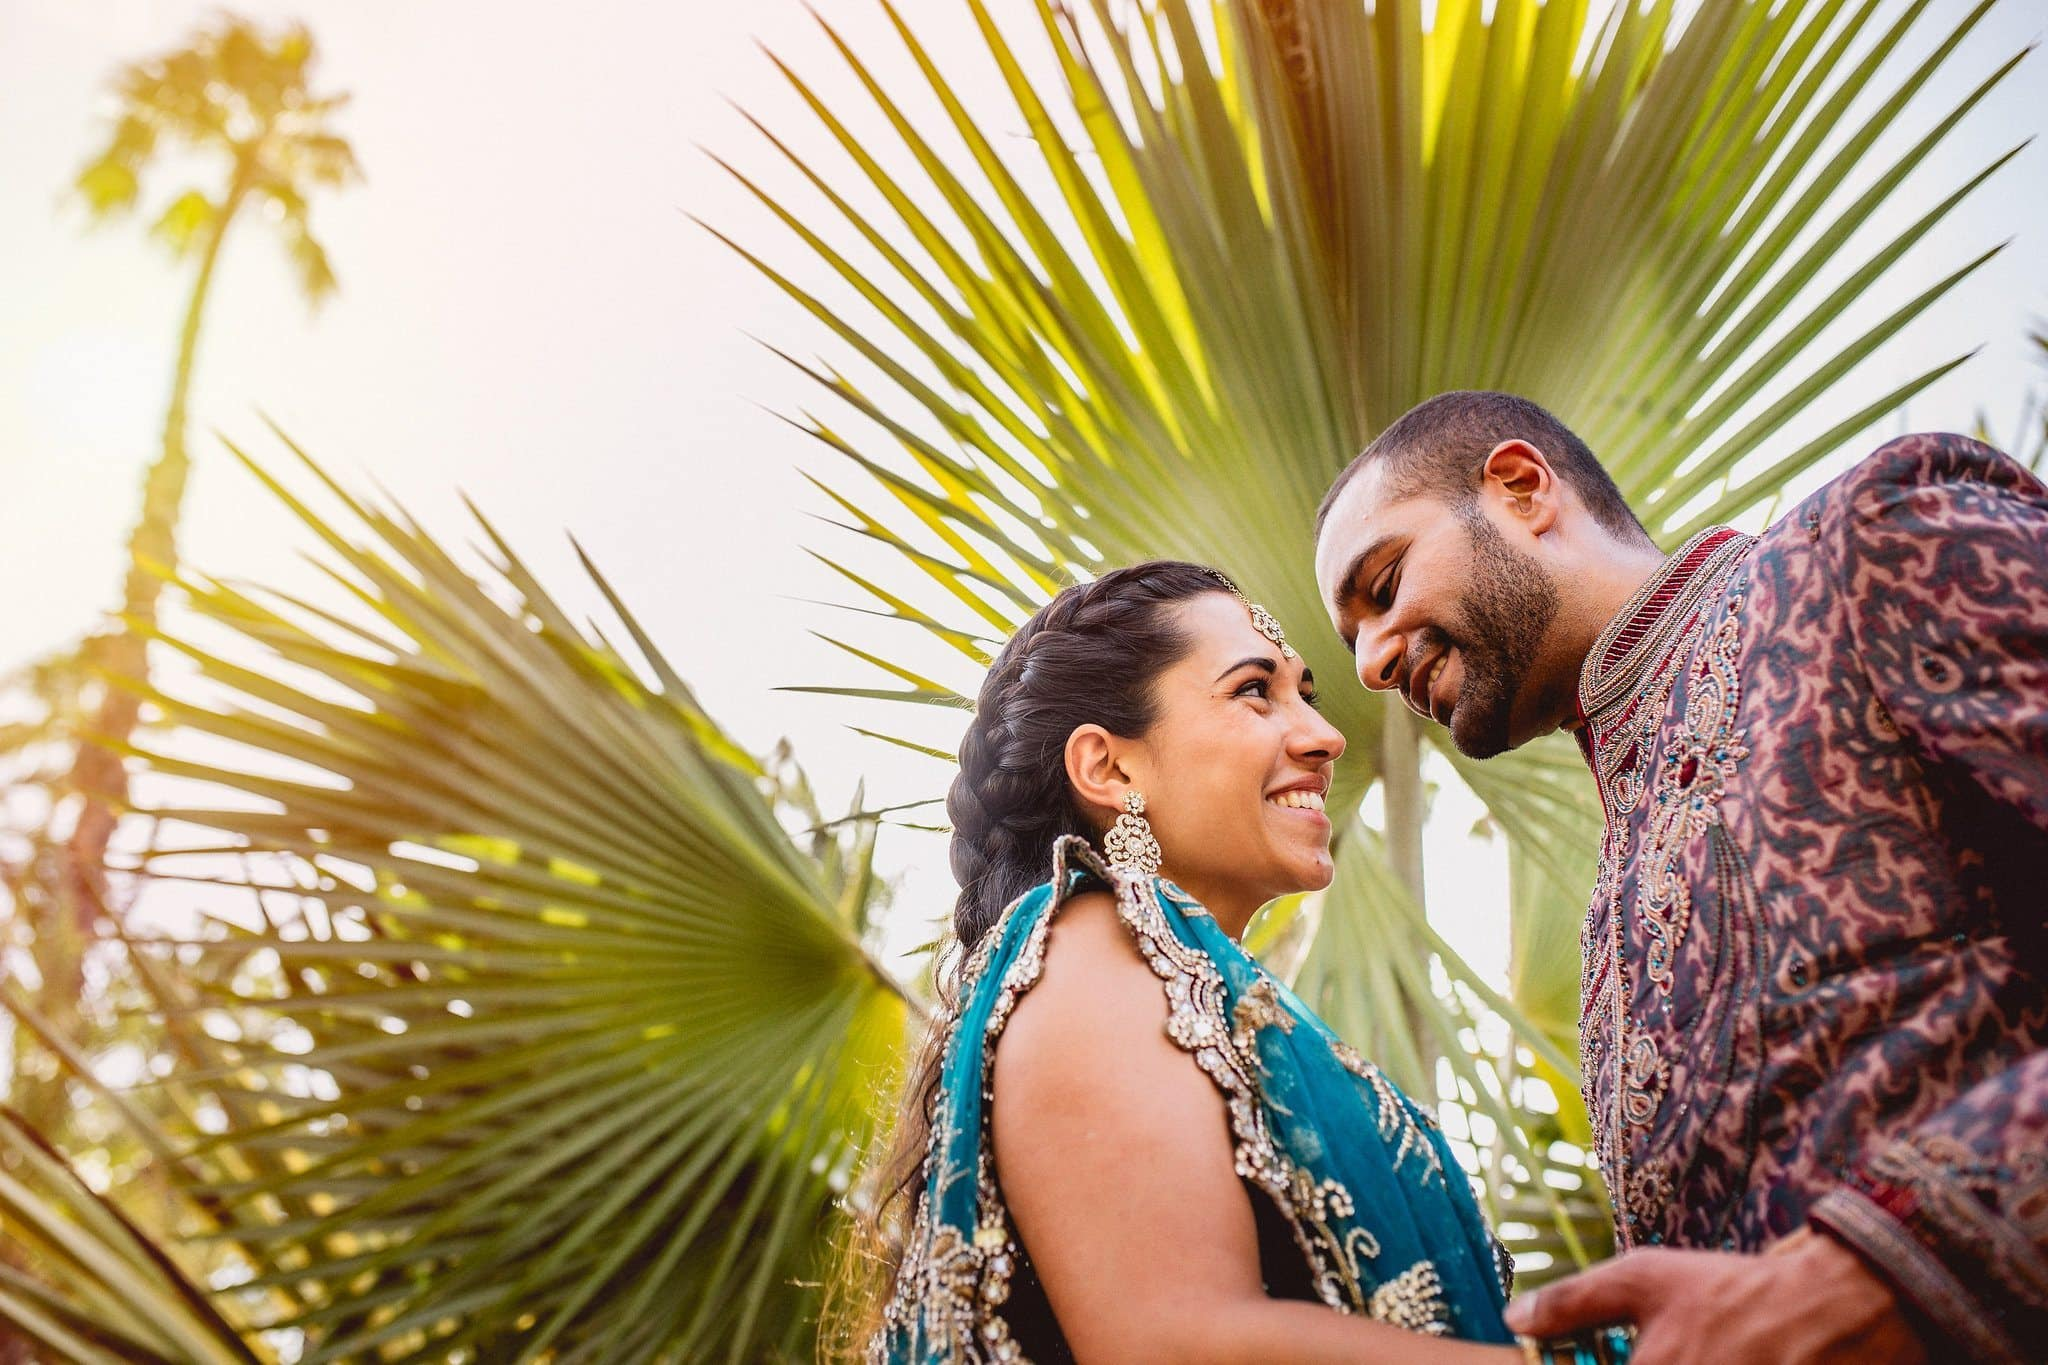 Asian bride and groom smile at each other framed by a large palm tree leaf in Marrakech